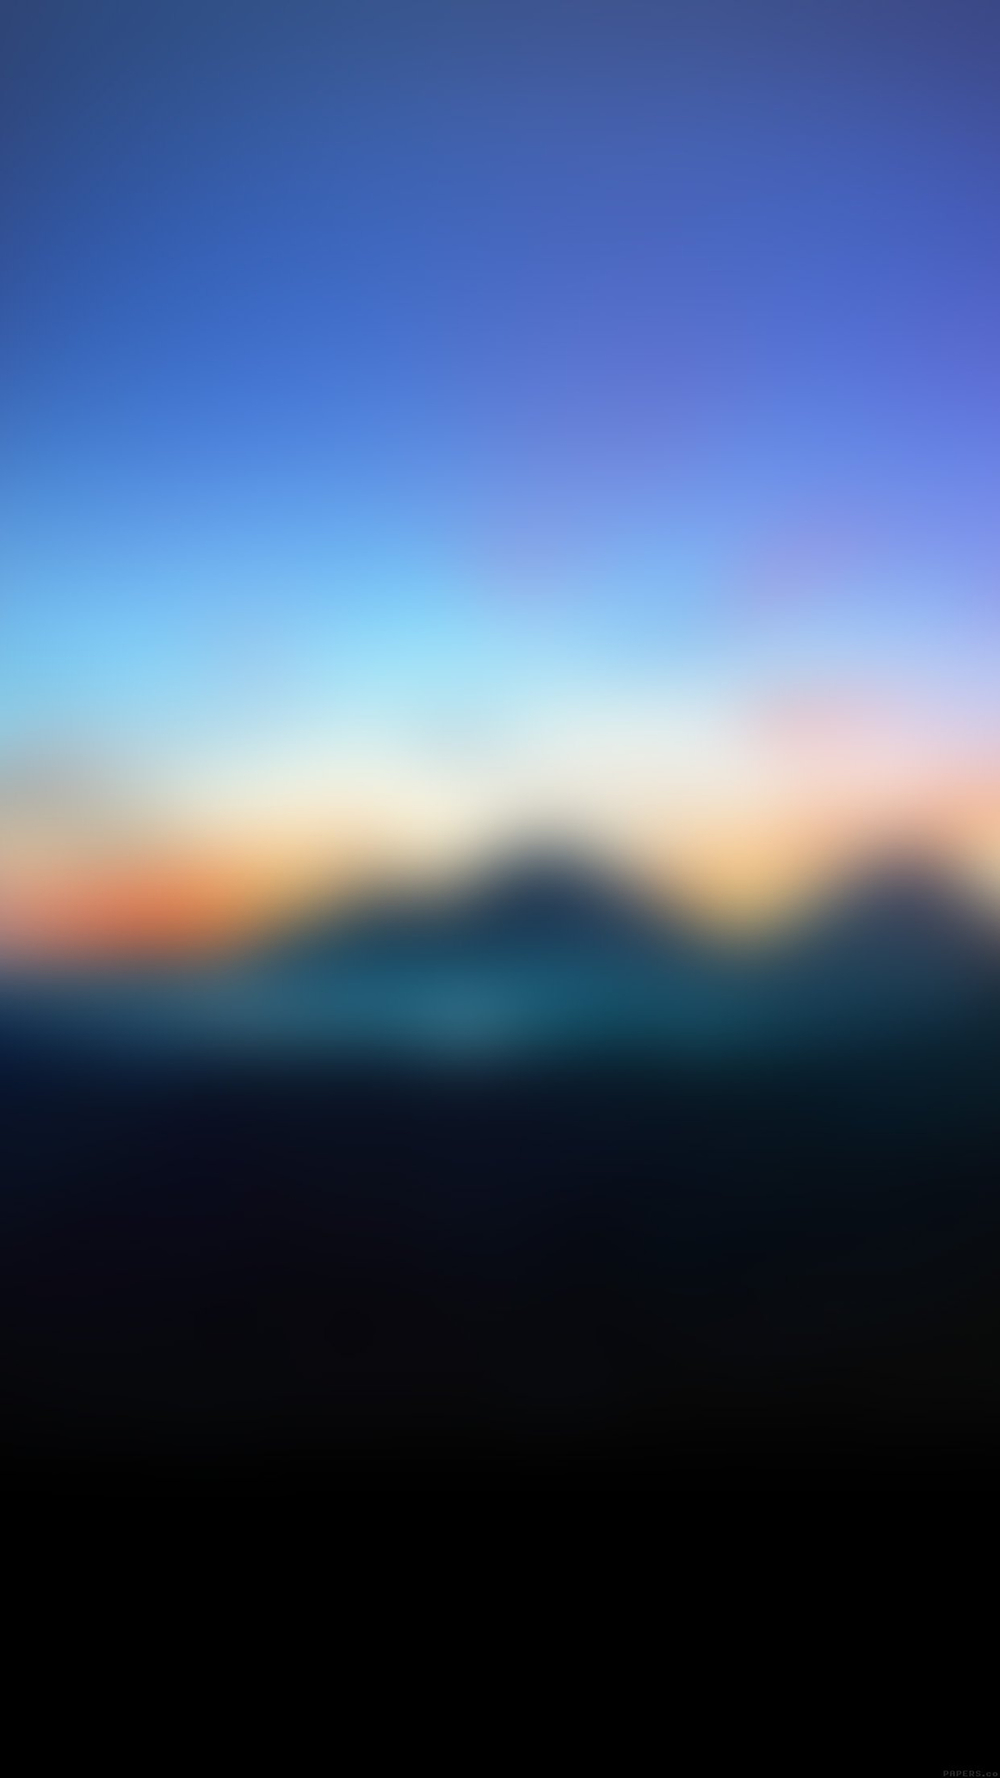 Mountain-Sunrise-Gradation-Blur-iphone-6-wallpaper-ilikewallpaper_com.jpg